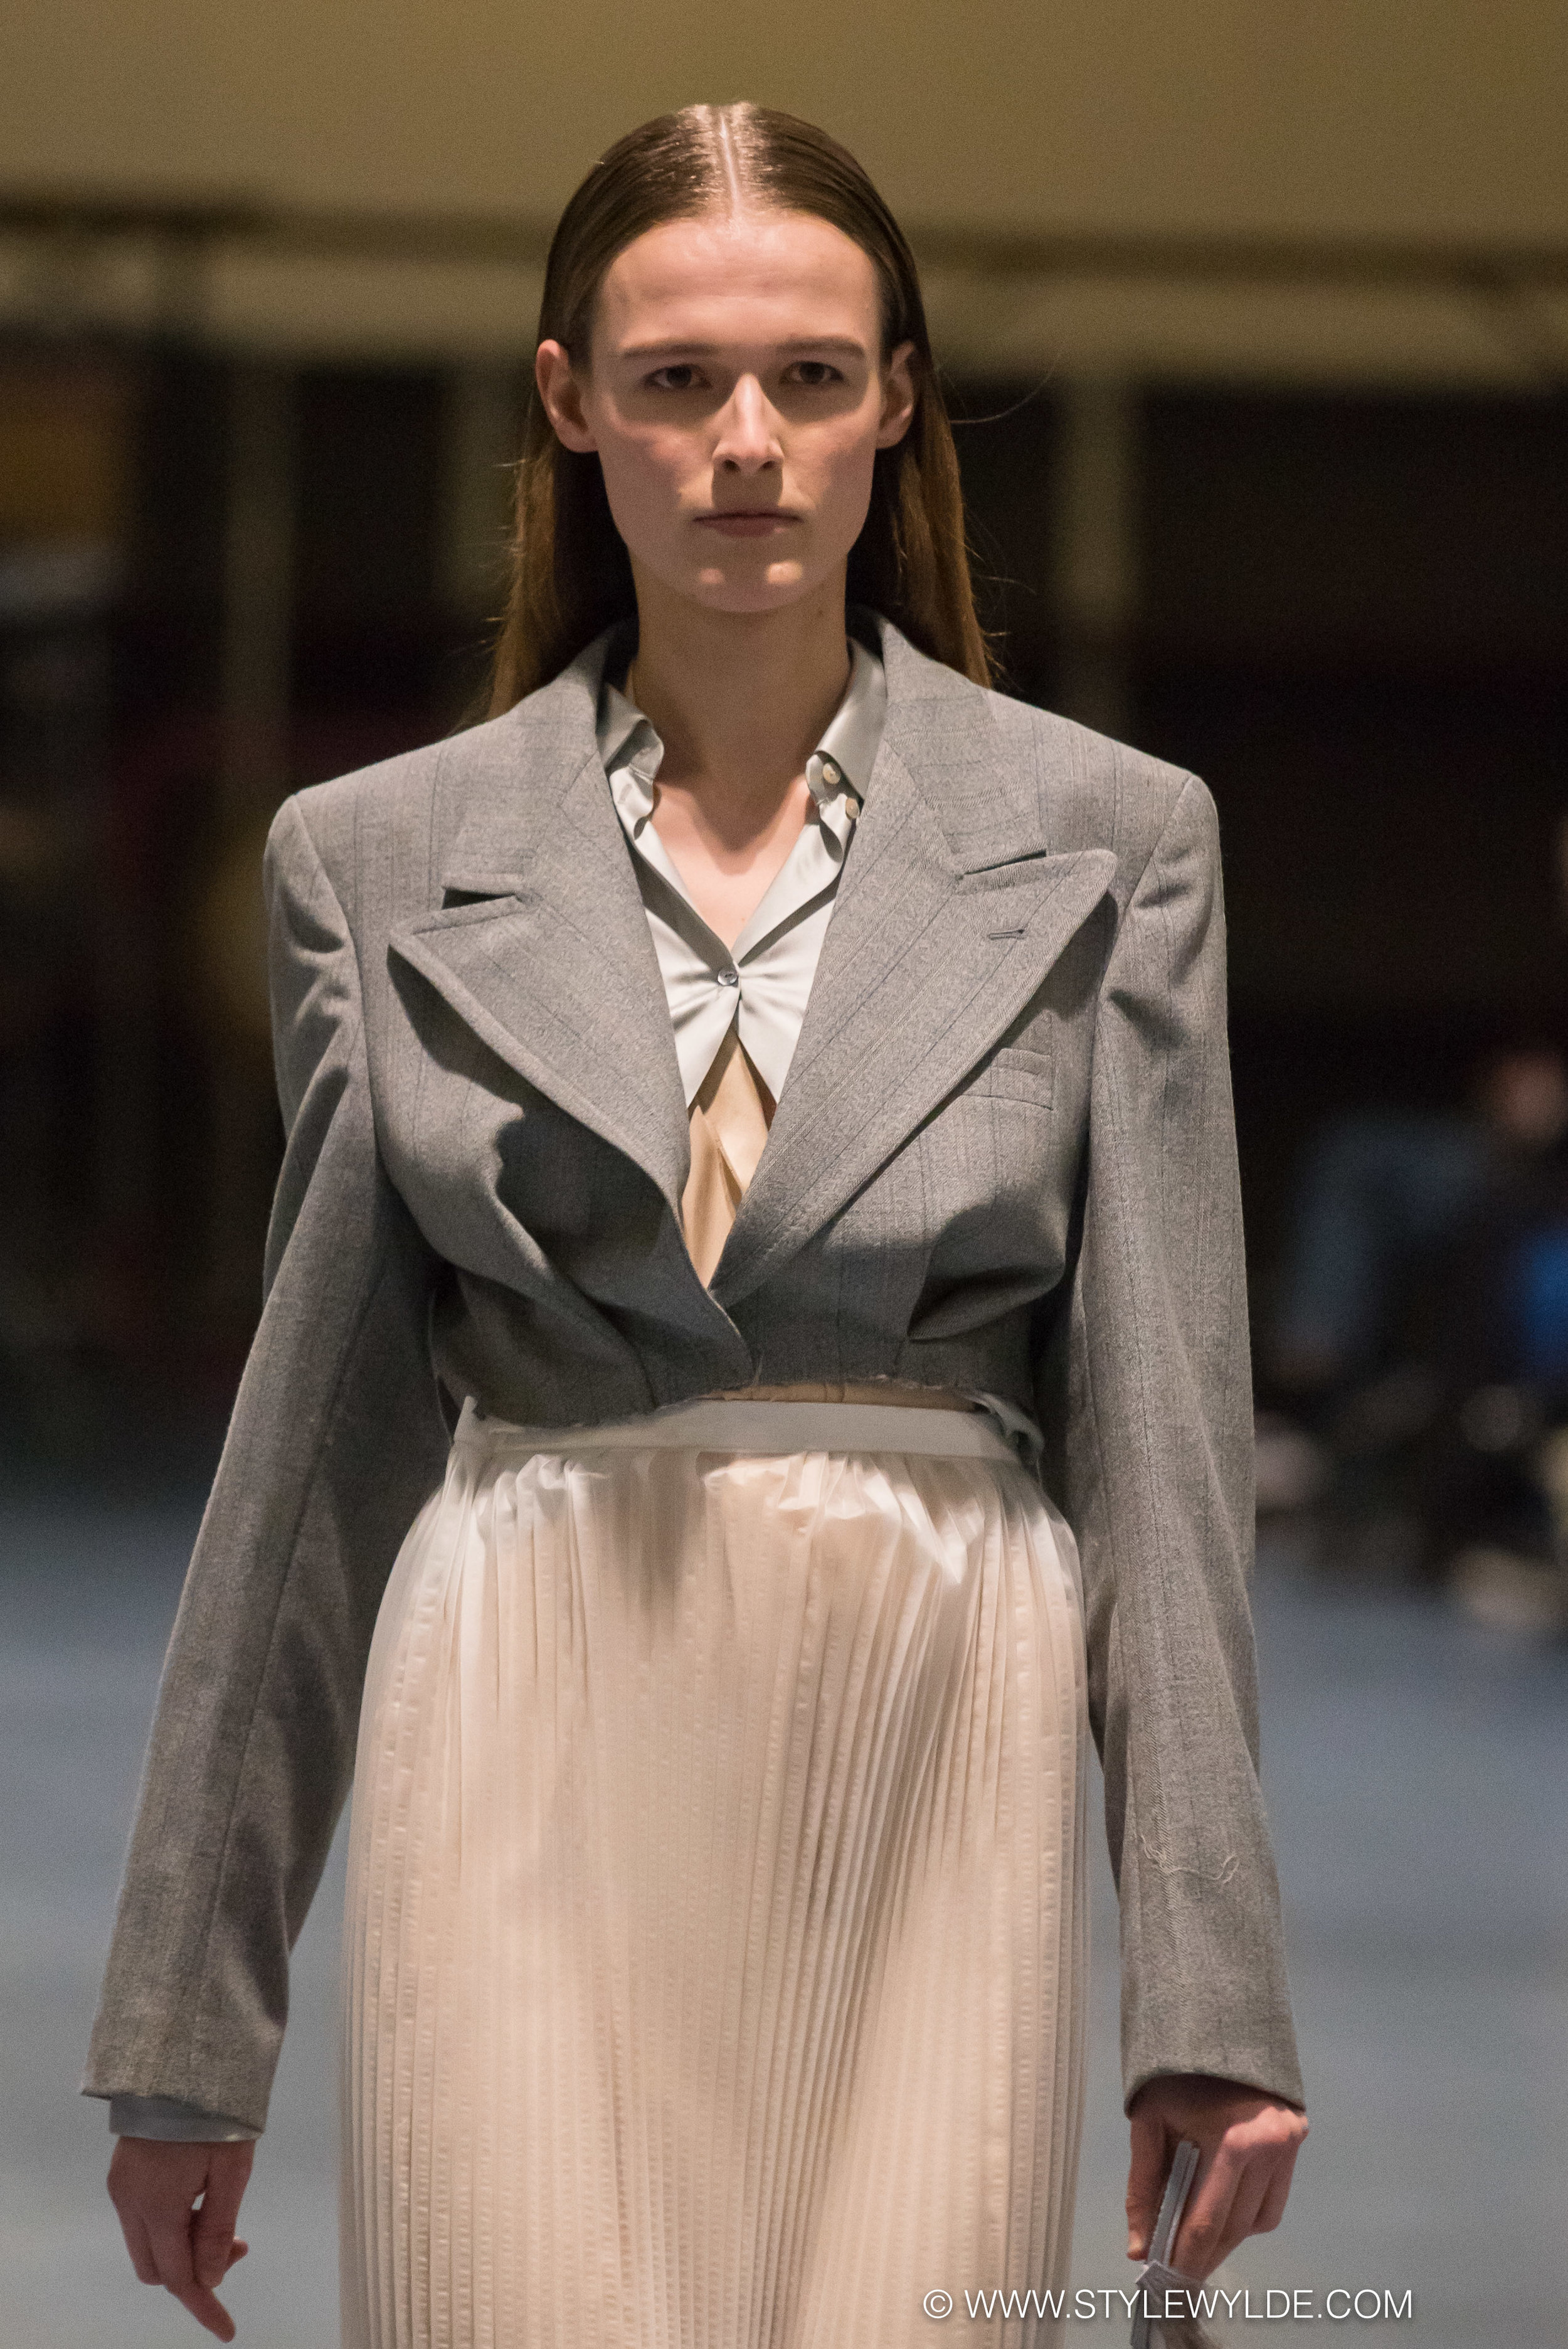 The shape of things - Known for her talent for both deconstruction and draping,designer Freya Dalsjø wowed the knowledgeable fashion crowd at her Fall 2018 show with an array of inventive pieces that challenged the viewer with new shapes and silhouettes.